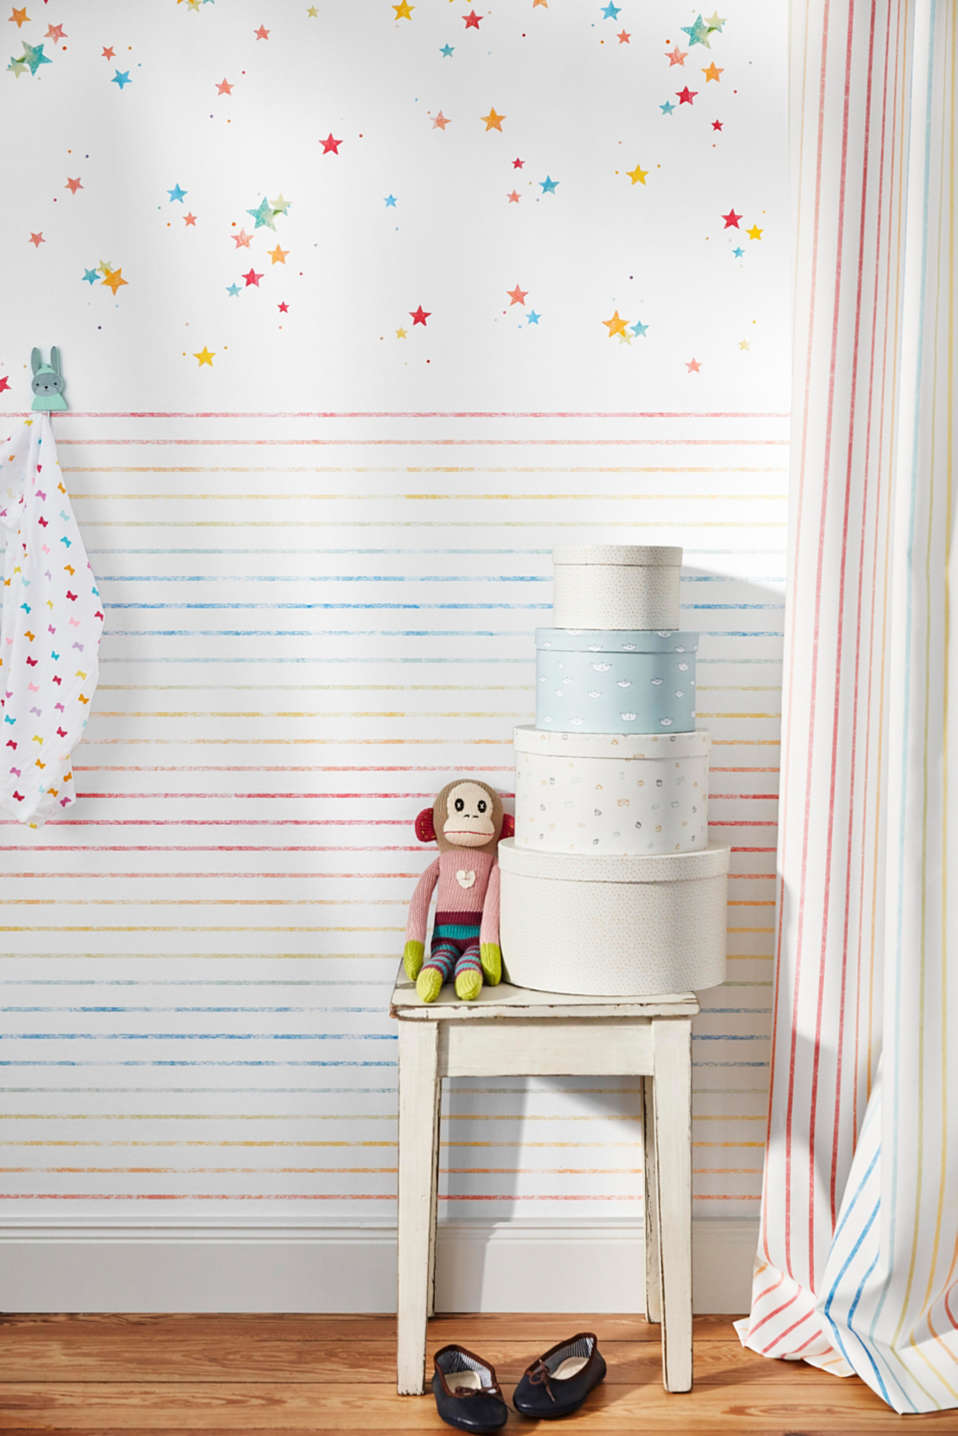 Esprit - Wallpaper with colourful stars, paper